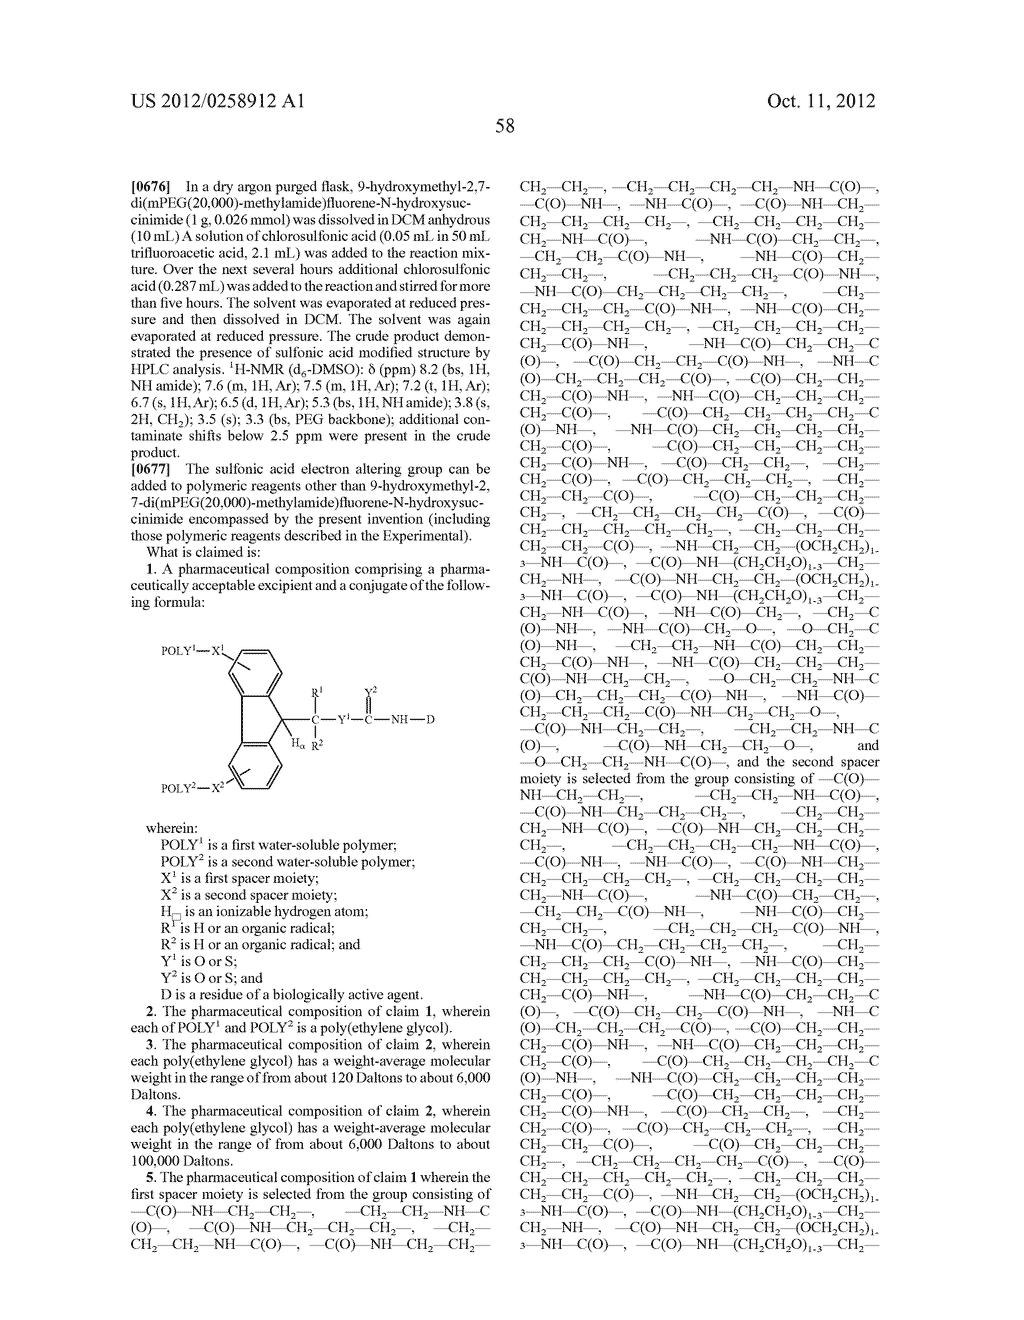 PHARMACEUTICAL COMPOSITIONS AND METHODS FOR DELIVERING SUCH COMPOSITIONS - diagram, schematic, and image 71